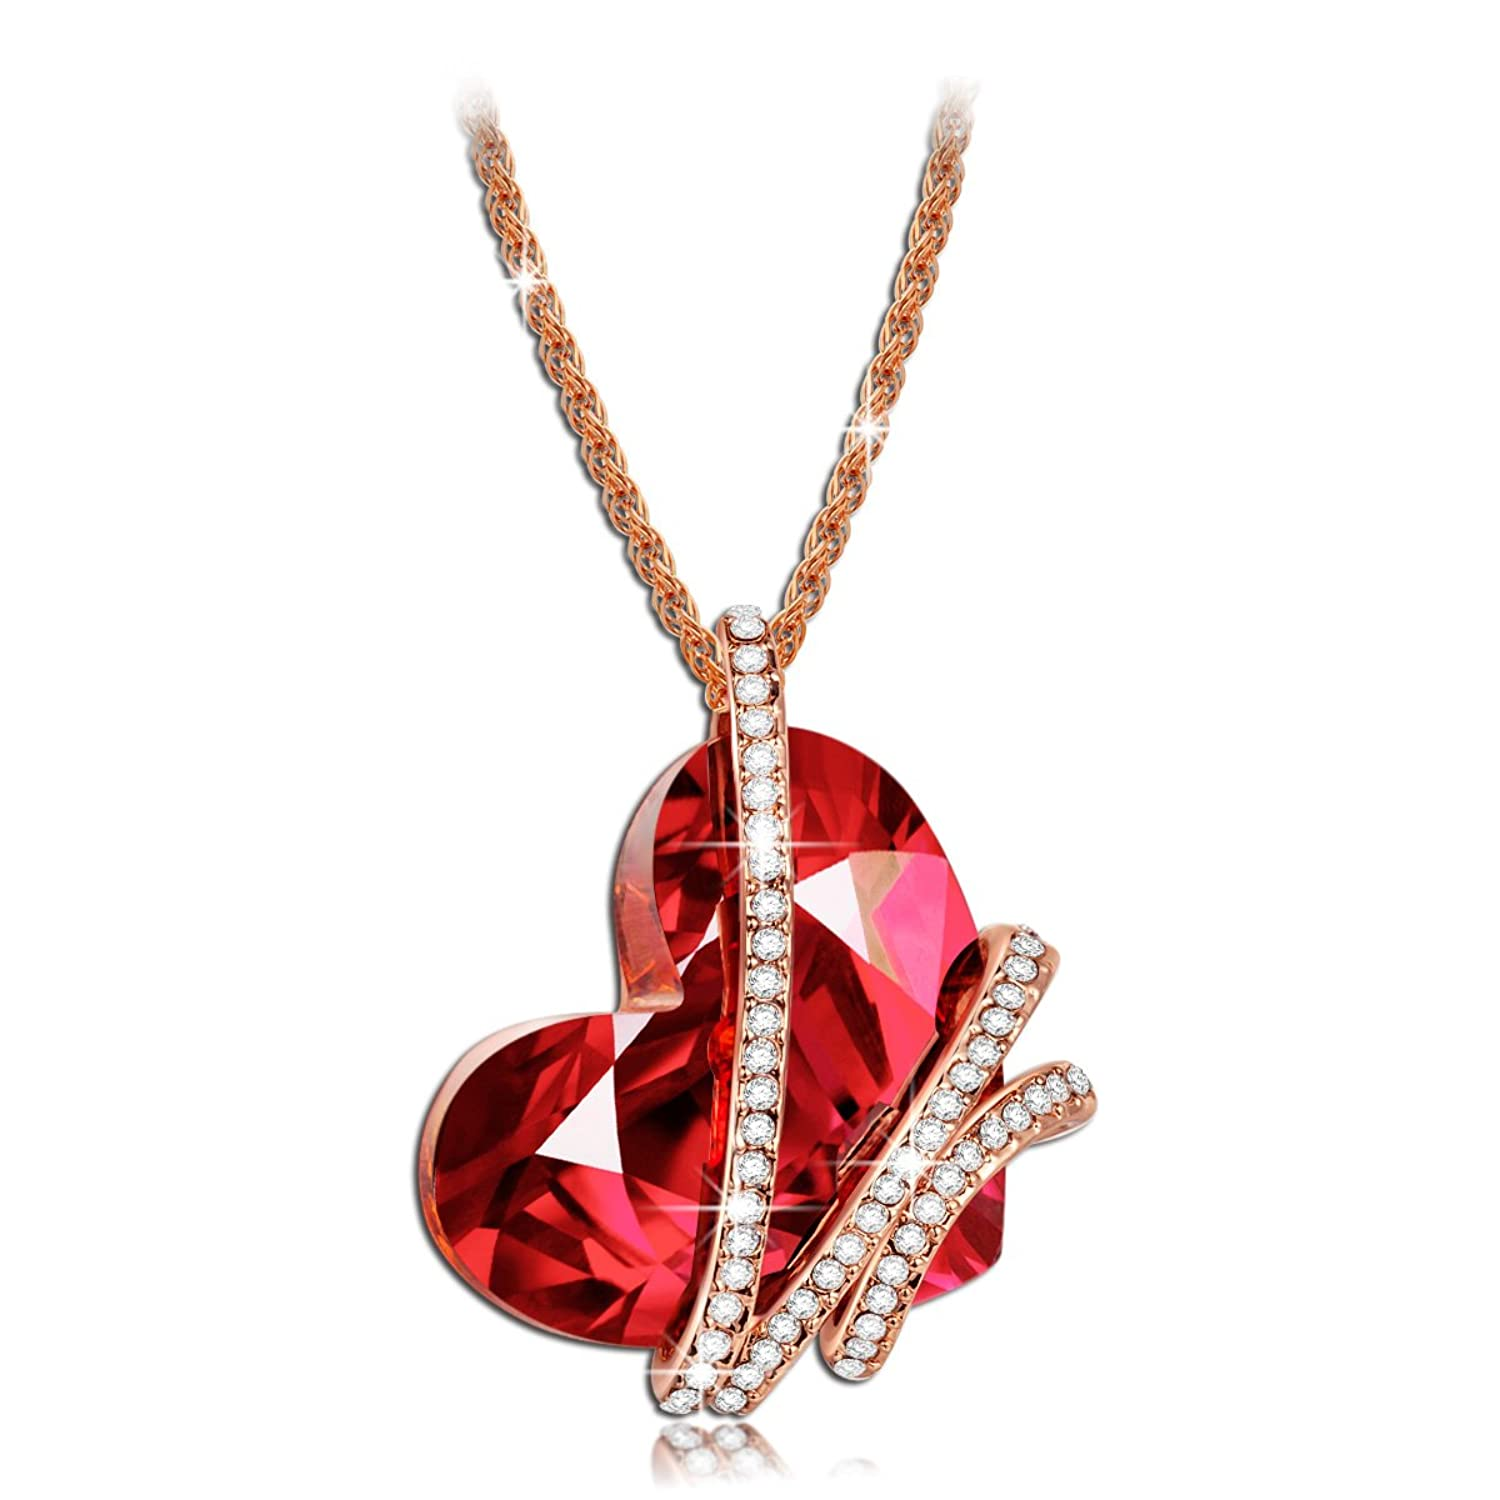 "Qianse ""Heart of the Ocean"" SWAROVSKI ELEMENTS Crystal Heart Shape Pendant Necklace - 2016 Paris Fashion Week Latest Heart Shape Design, Heart Crystal Women Jewelry, Symbol of Love"